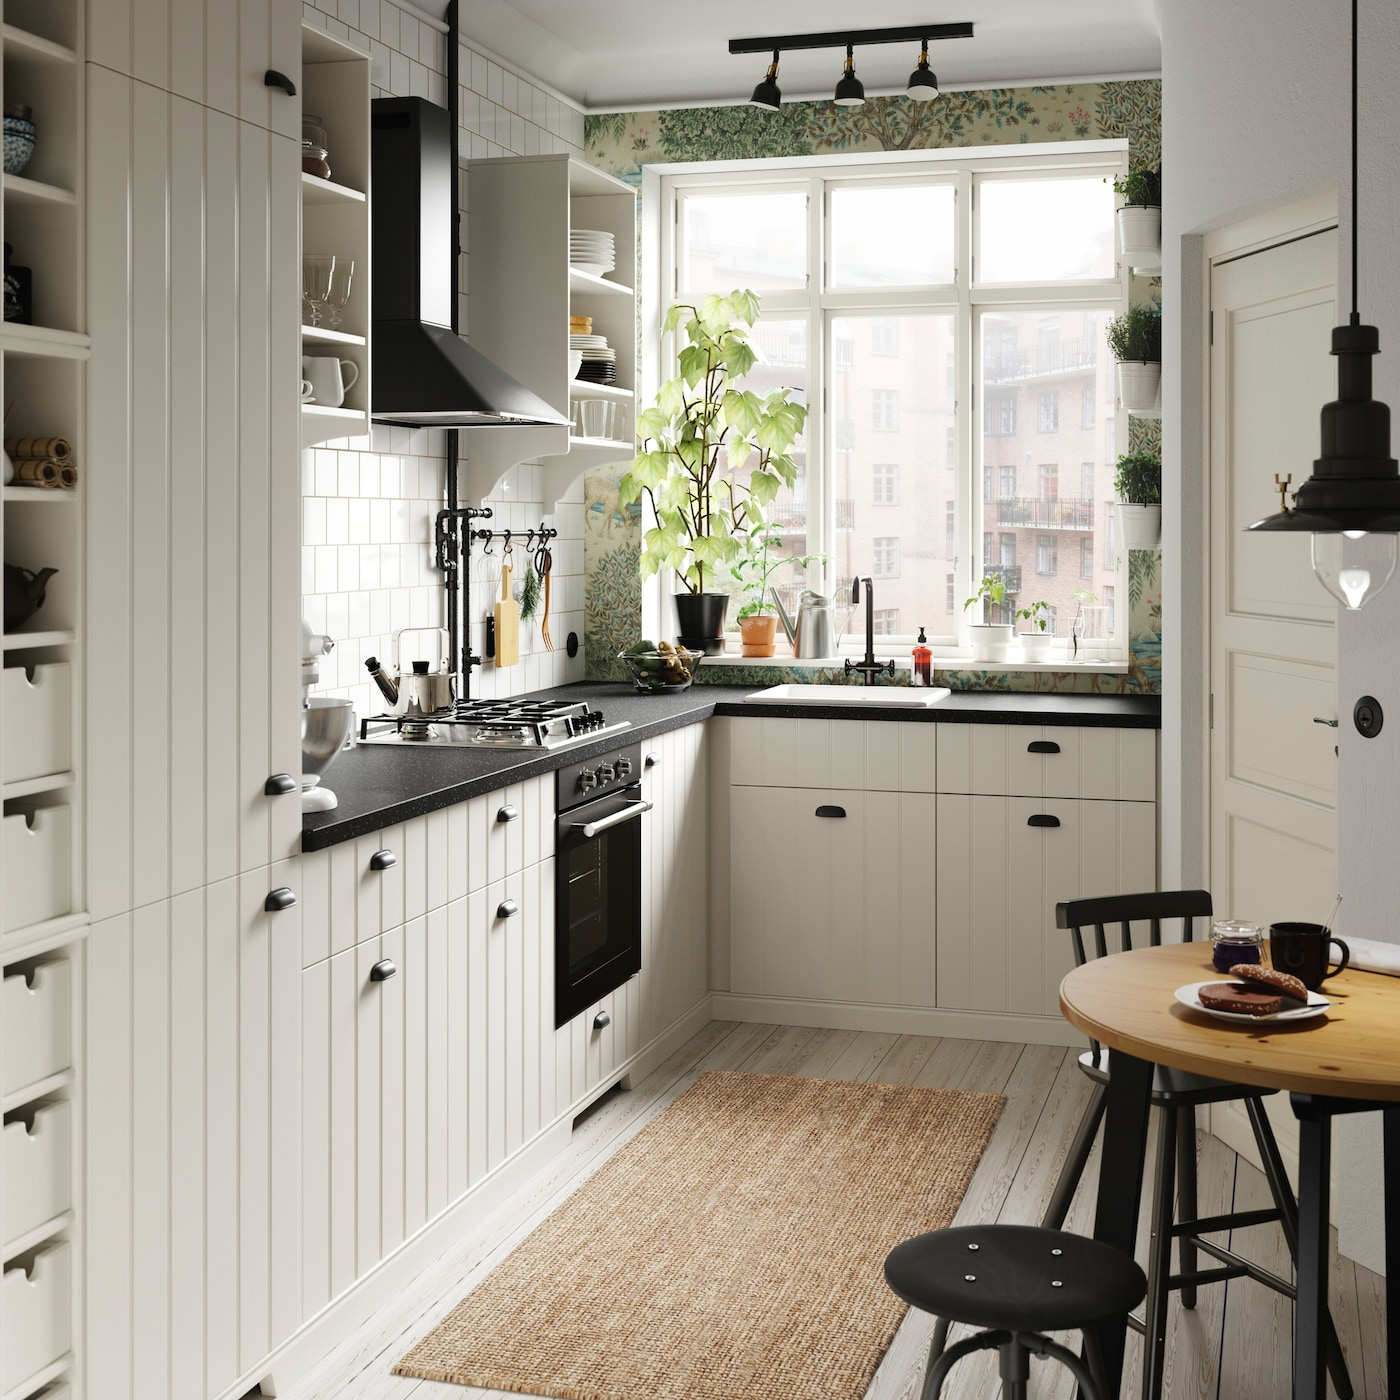 Buy Kitchenware, Equipment & Kitchen Supplies Online UAE - IKEA